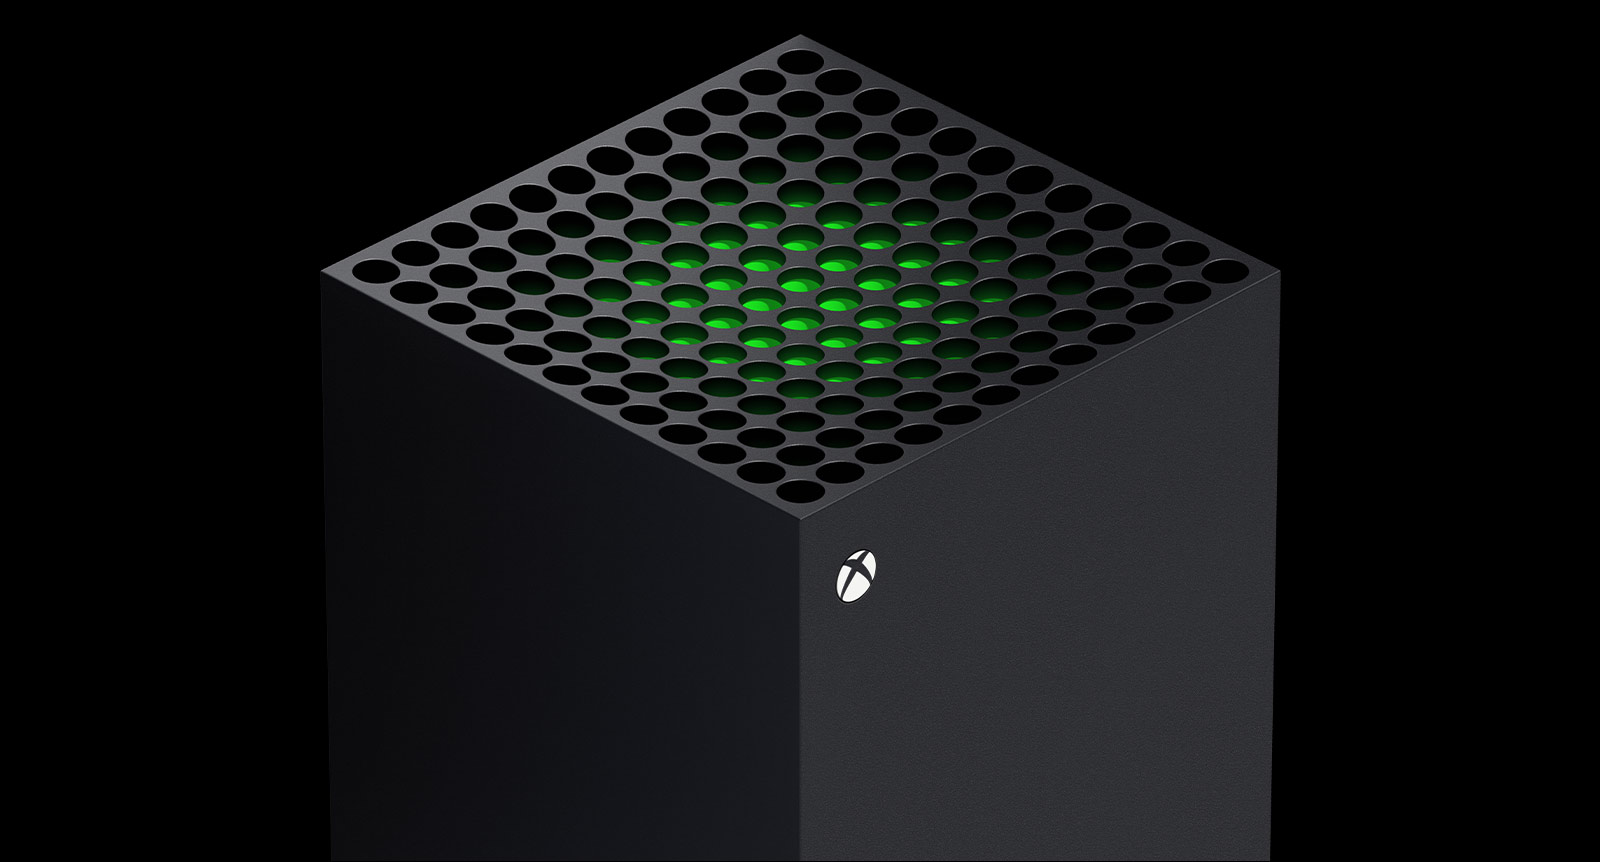 A parte superior verde do console Xbox Series X